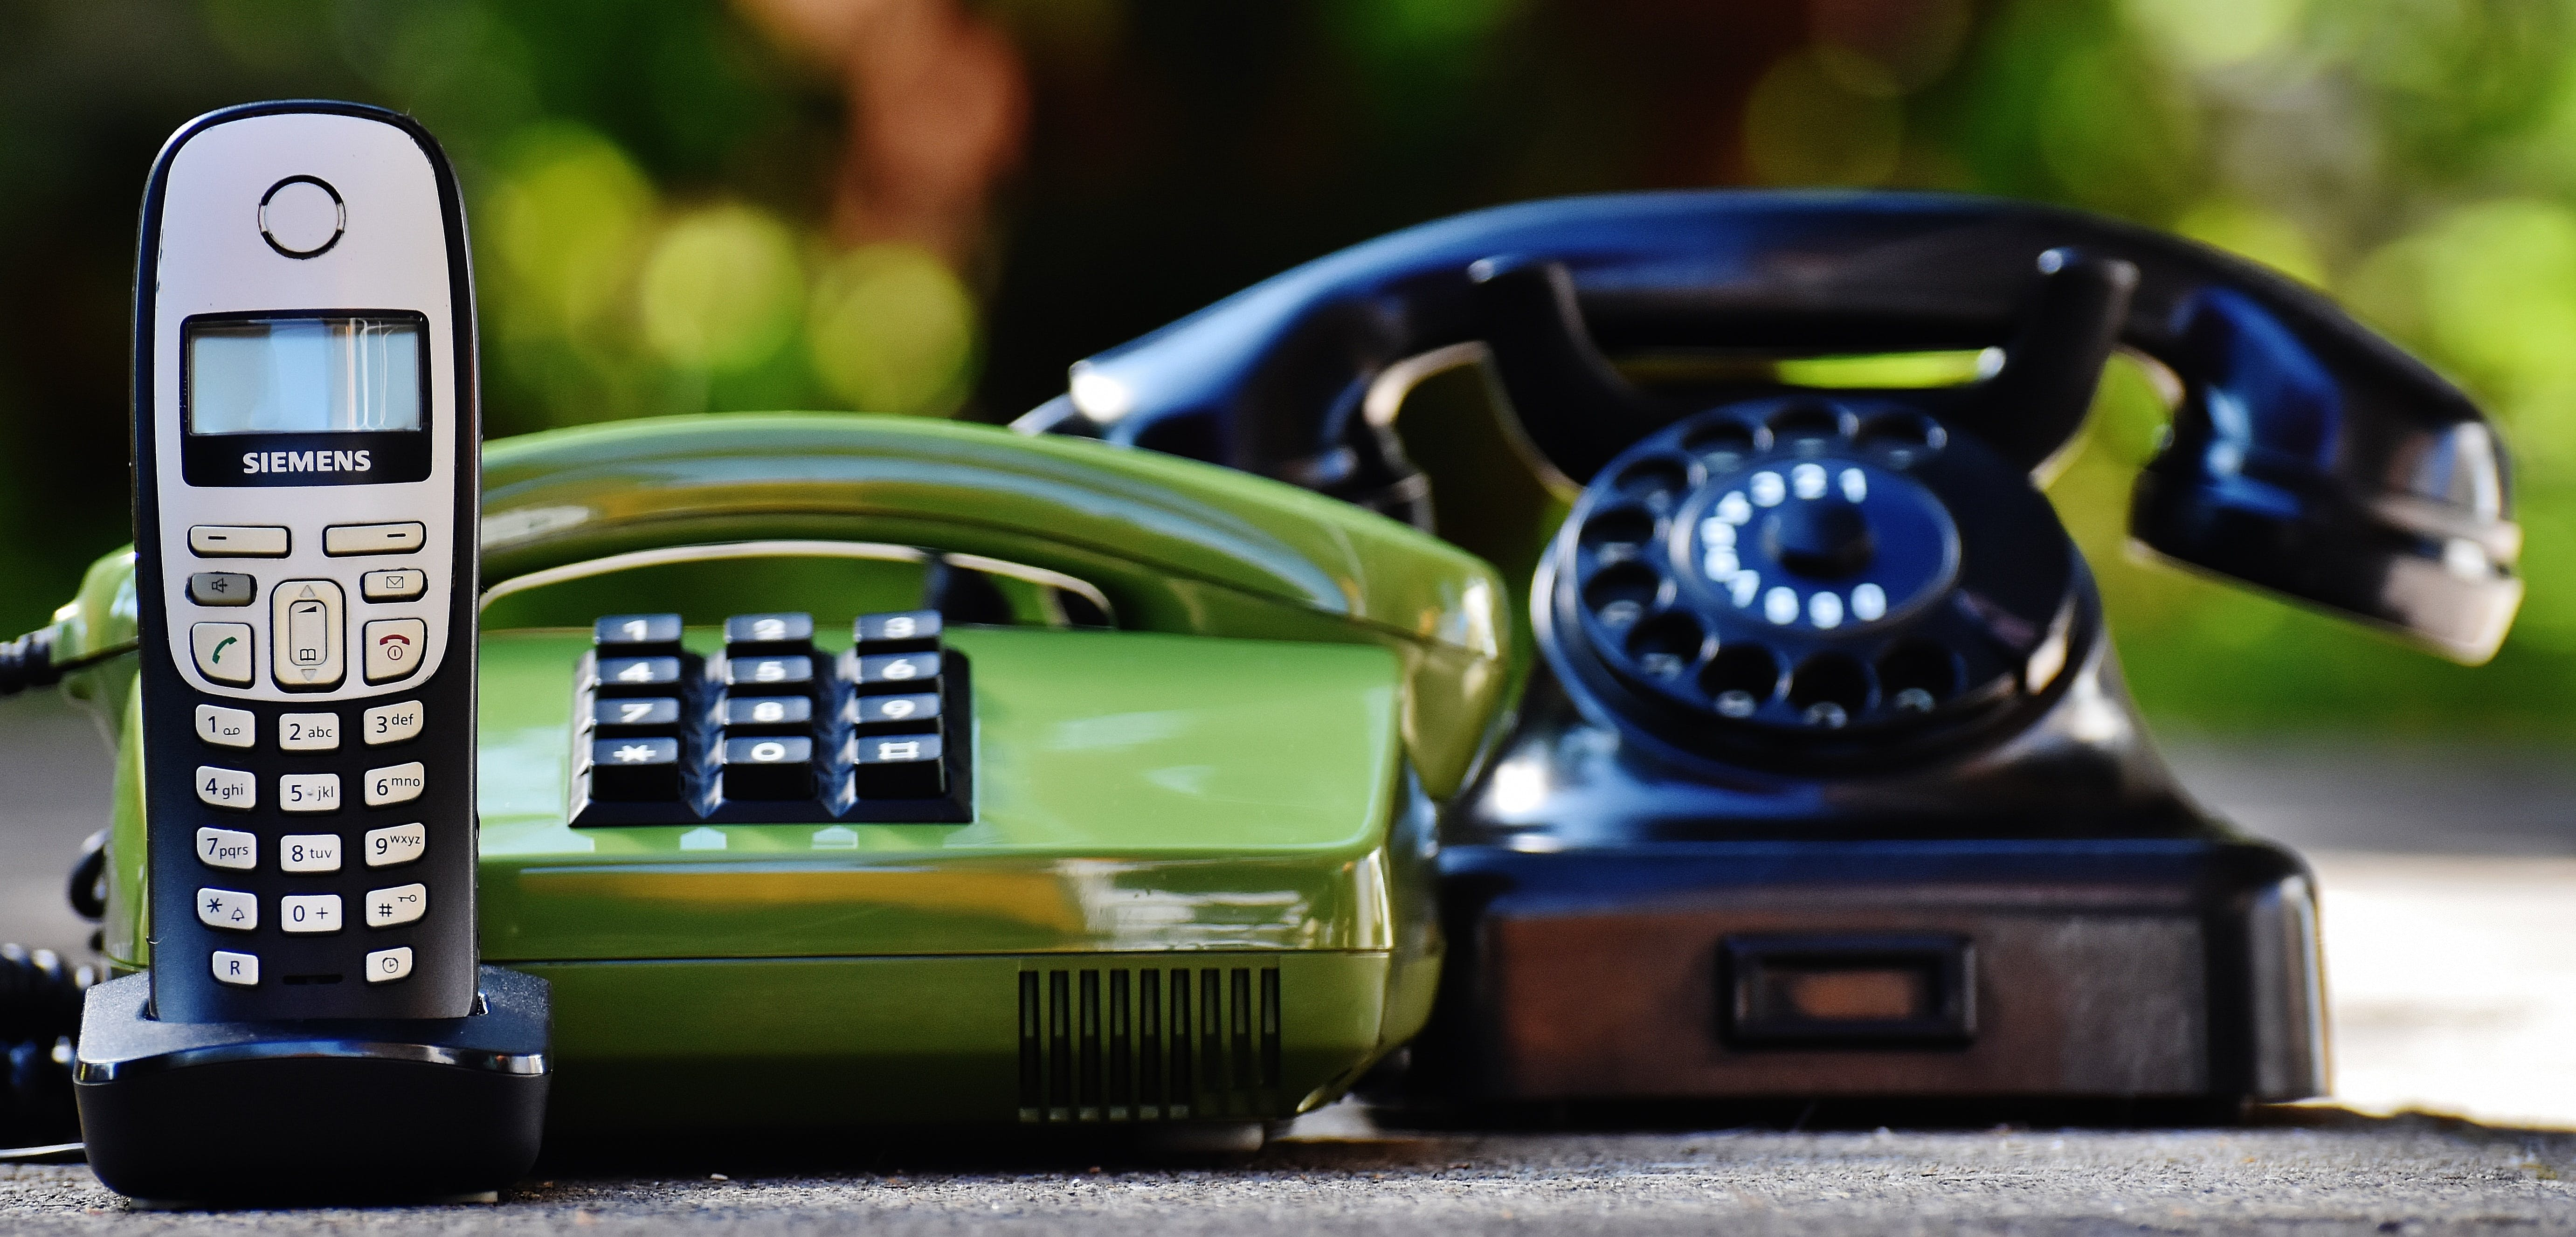 Black and Green Rotary Telephones Beside Cordless Home Telephone